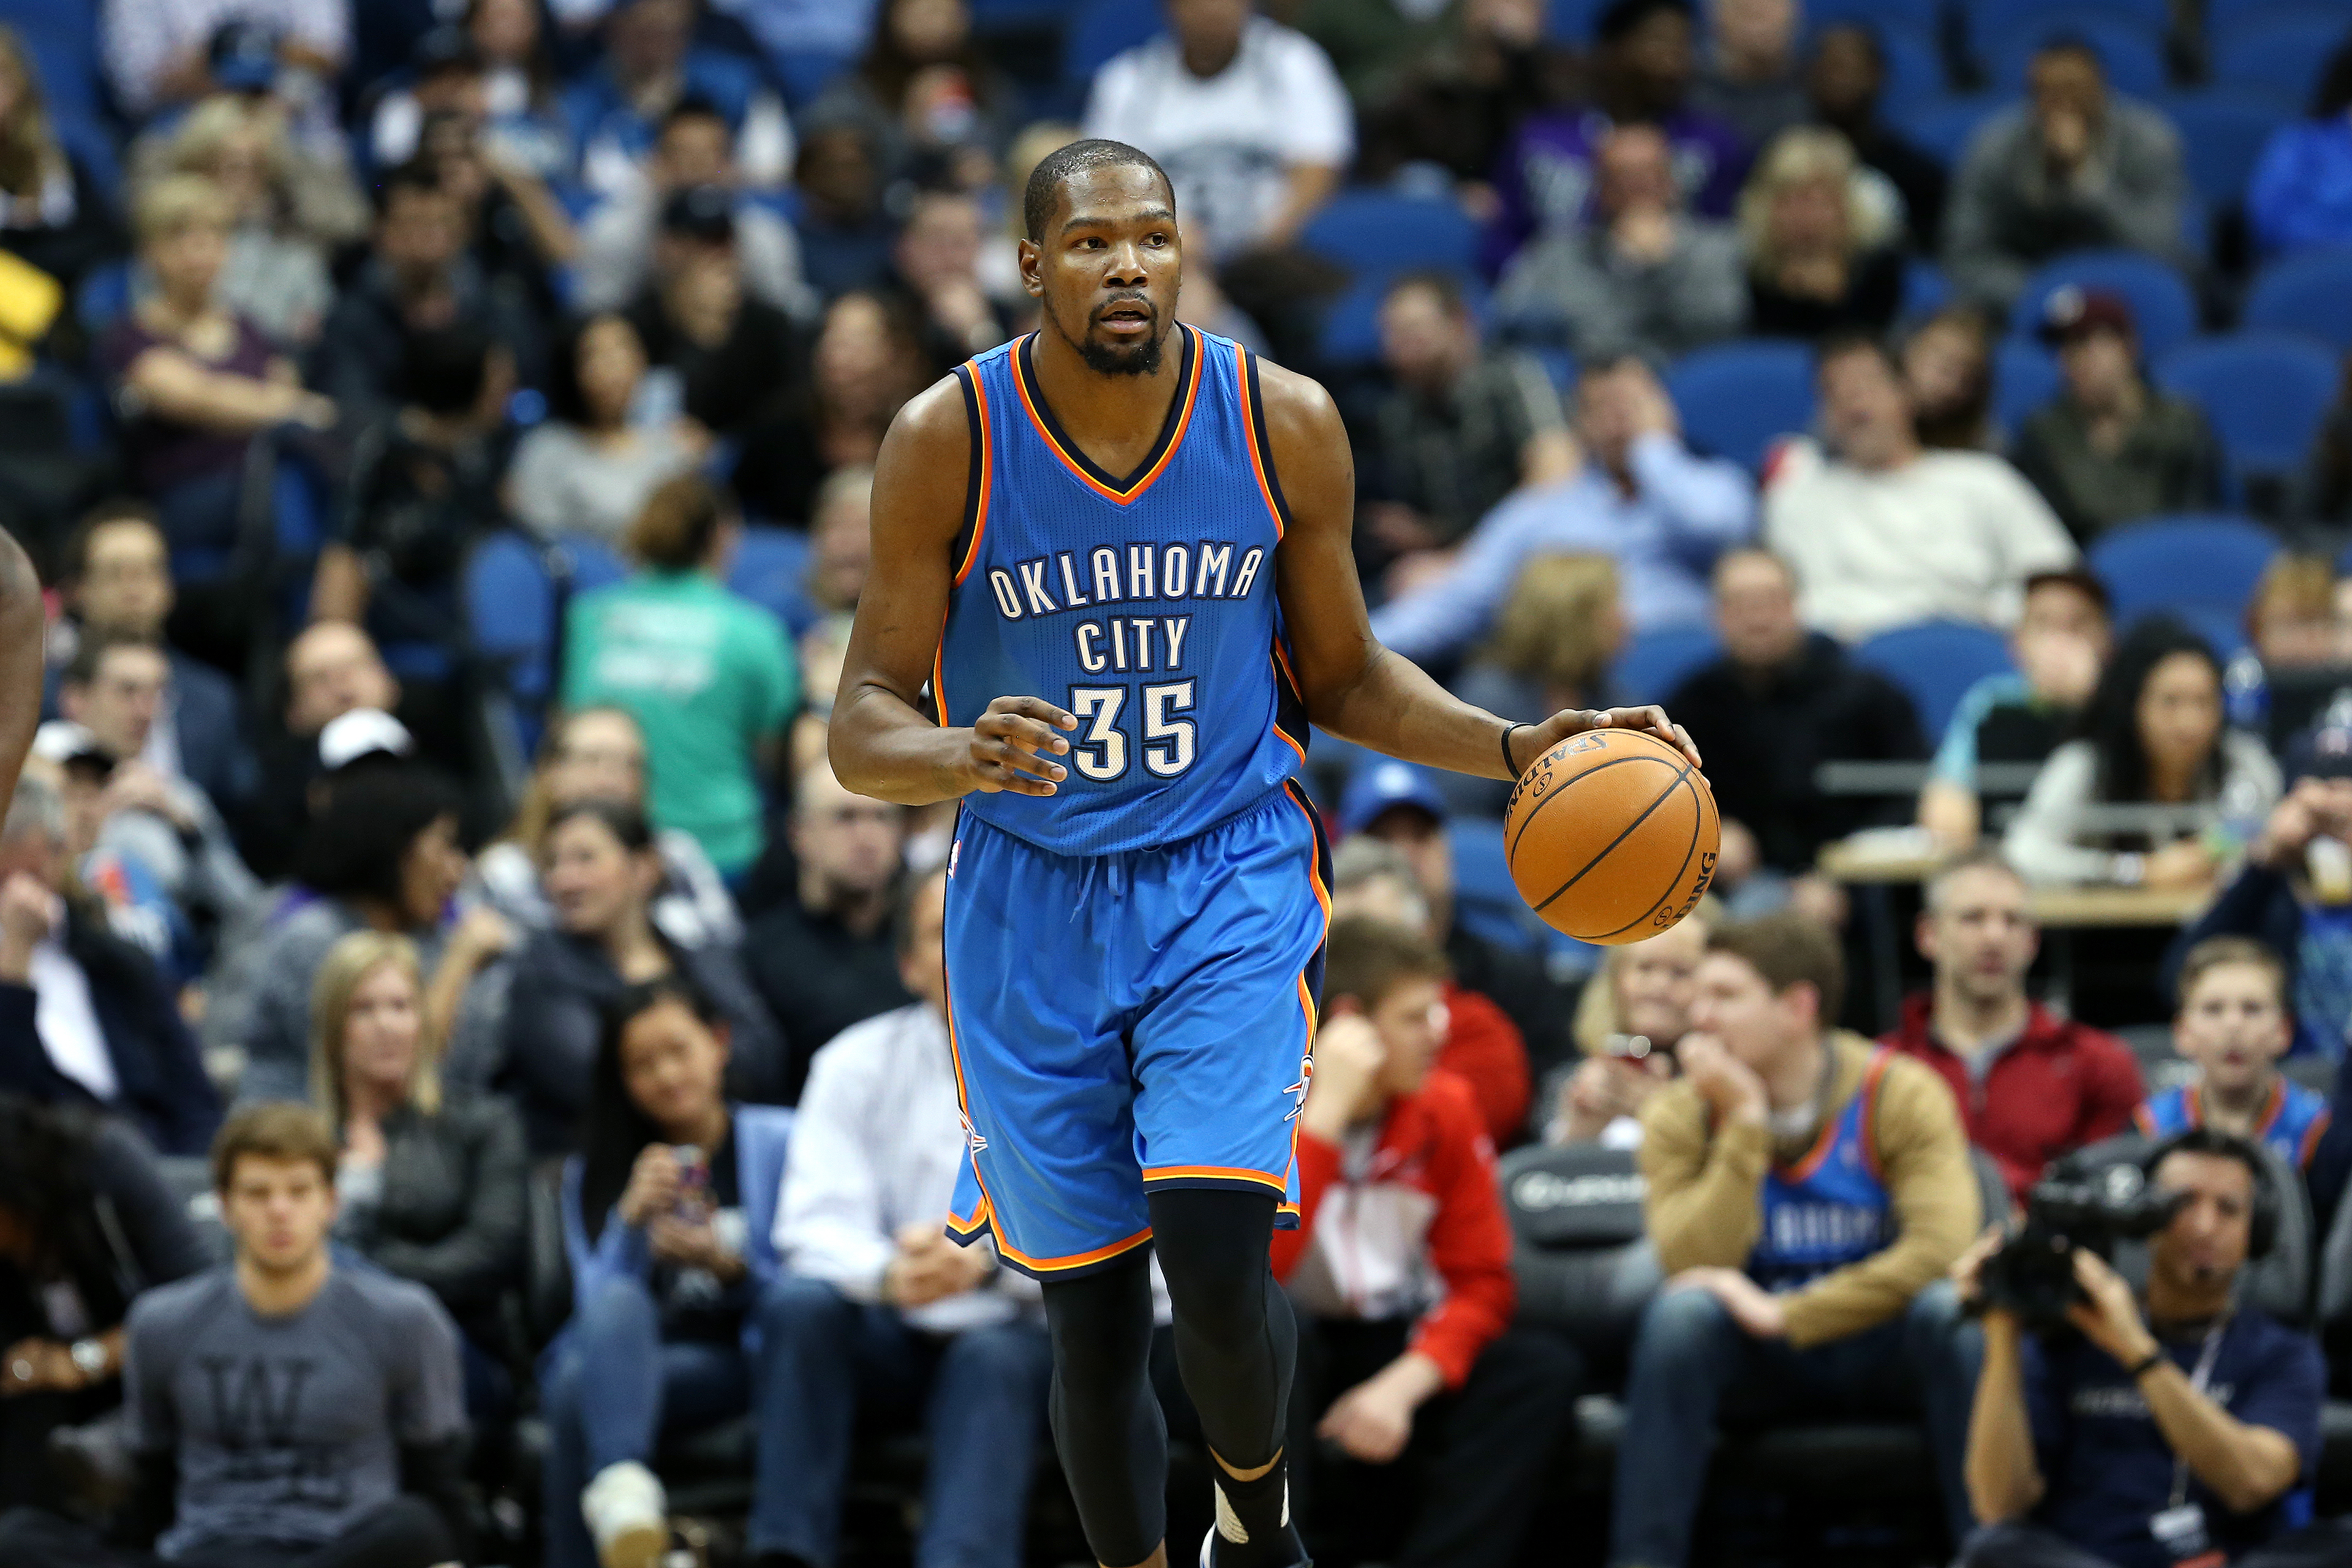 MINNEAPOLIS, MN -  JANUARY 27: Kevin Durant #35 of the Oklahoma City Thunder handles the ball during the game against the Minnesota Timberwolves on January 27, 2016 at Target Center in Minneapolis, Minnesota. (Photo by Jordan Johnson/NBAE via Getty Images